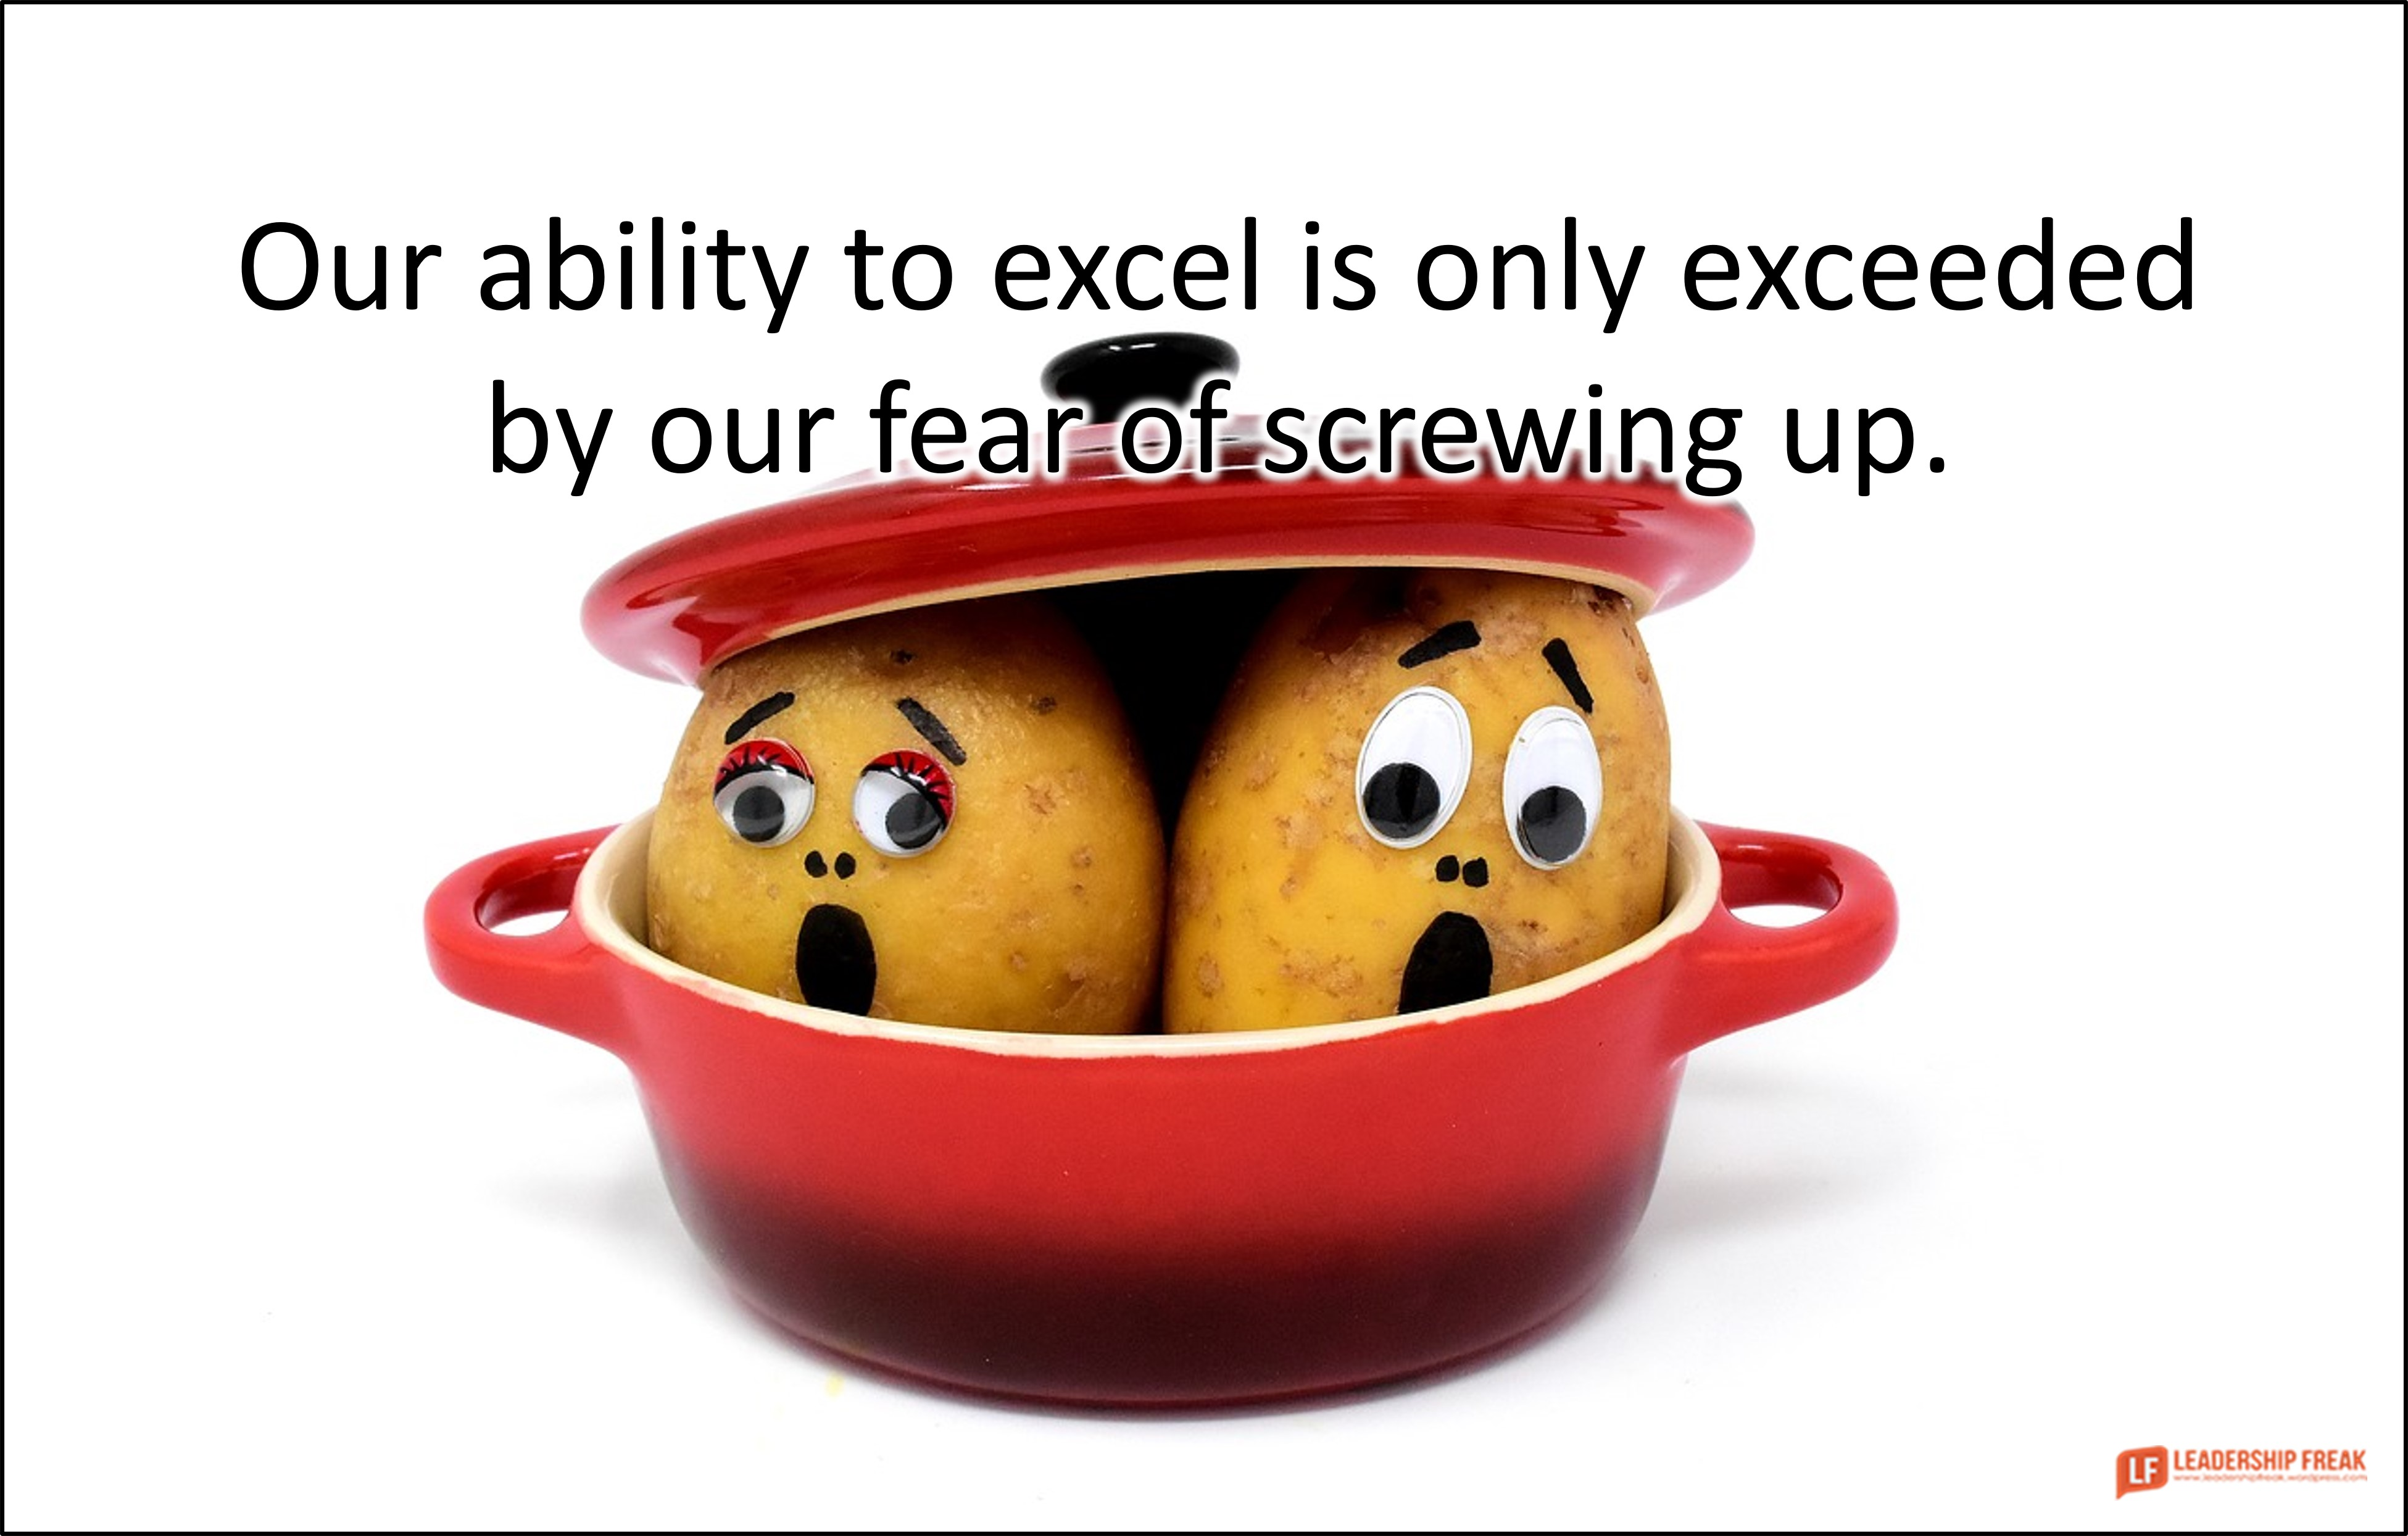 Two potatoes in a pot.  Our ability to excel is only exceeded by our fear of screwing up.